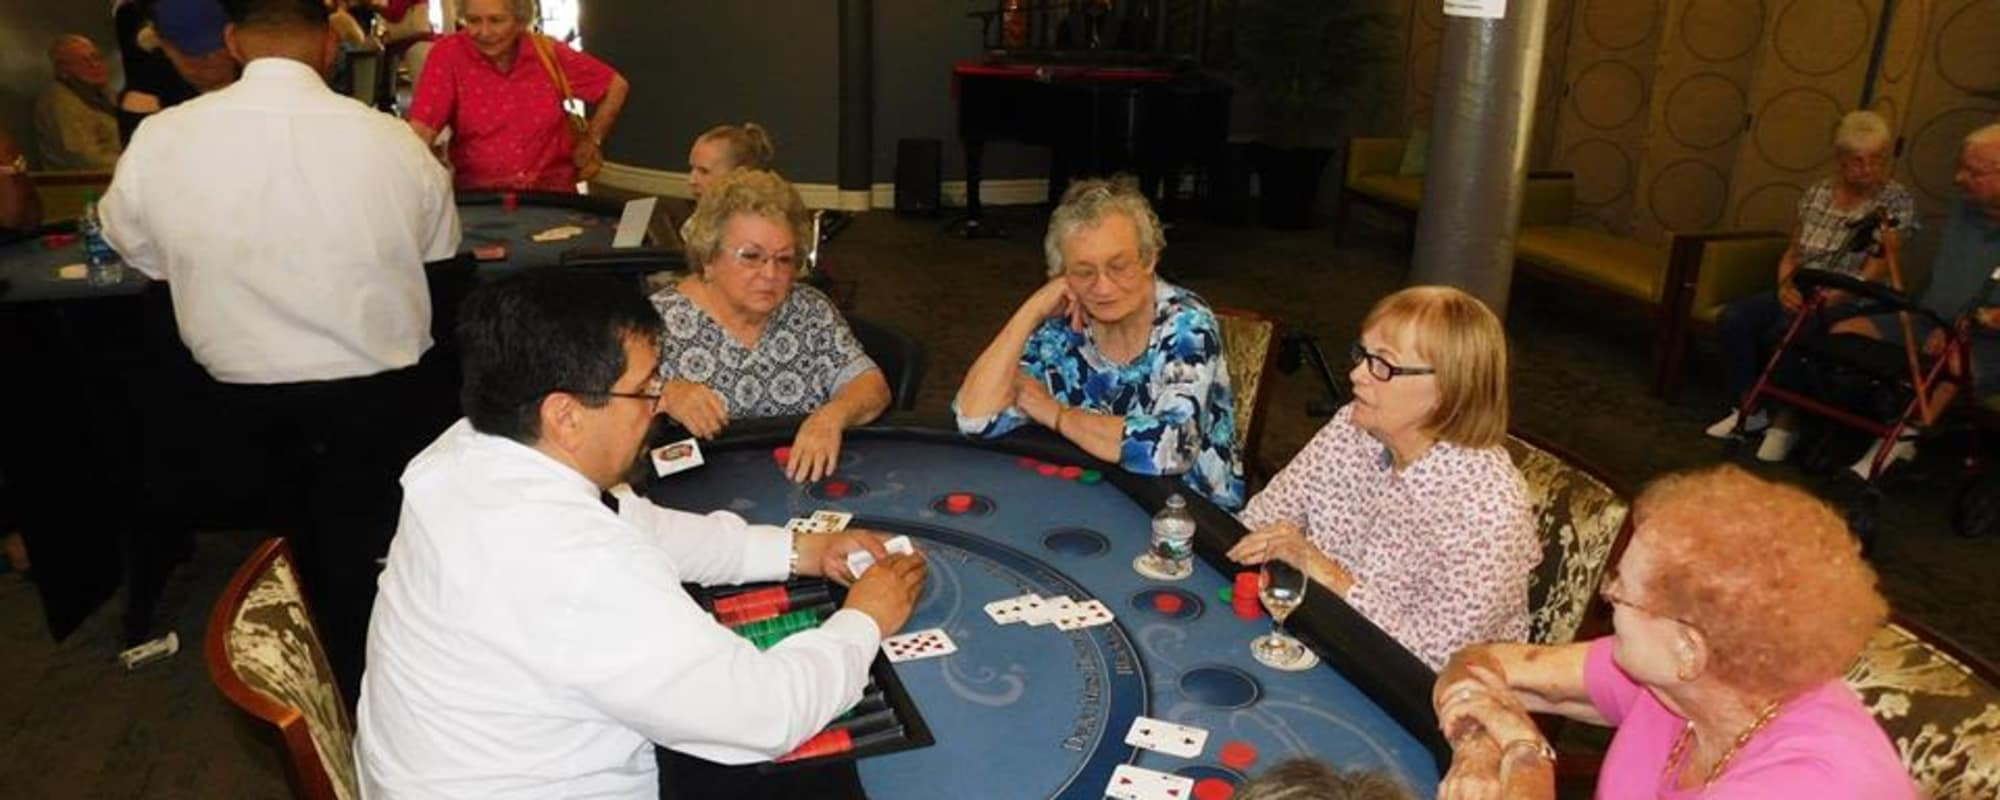 Games at The Bellettini in Bellevue, Washington